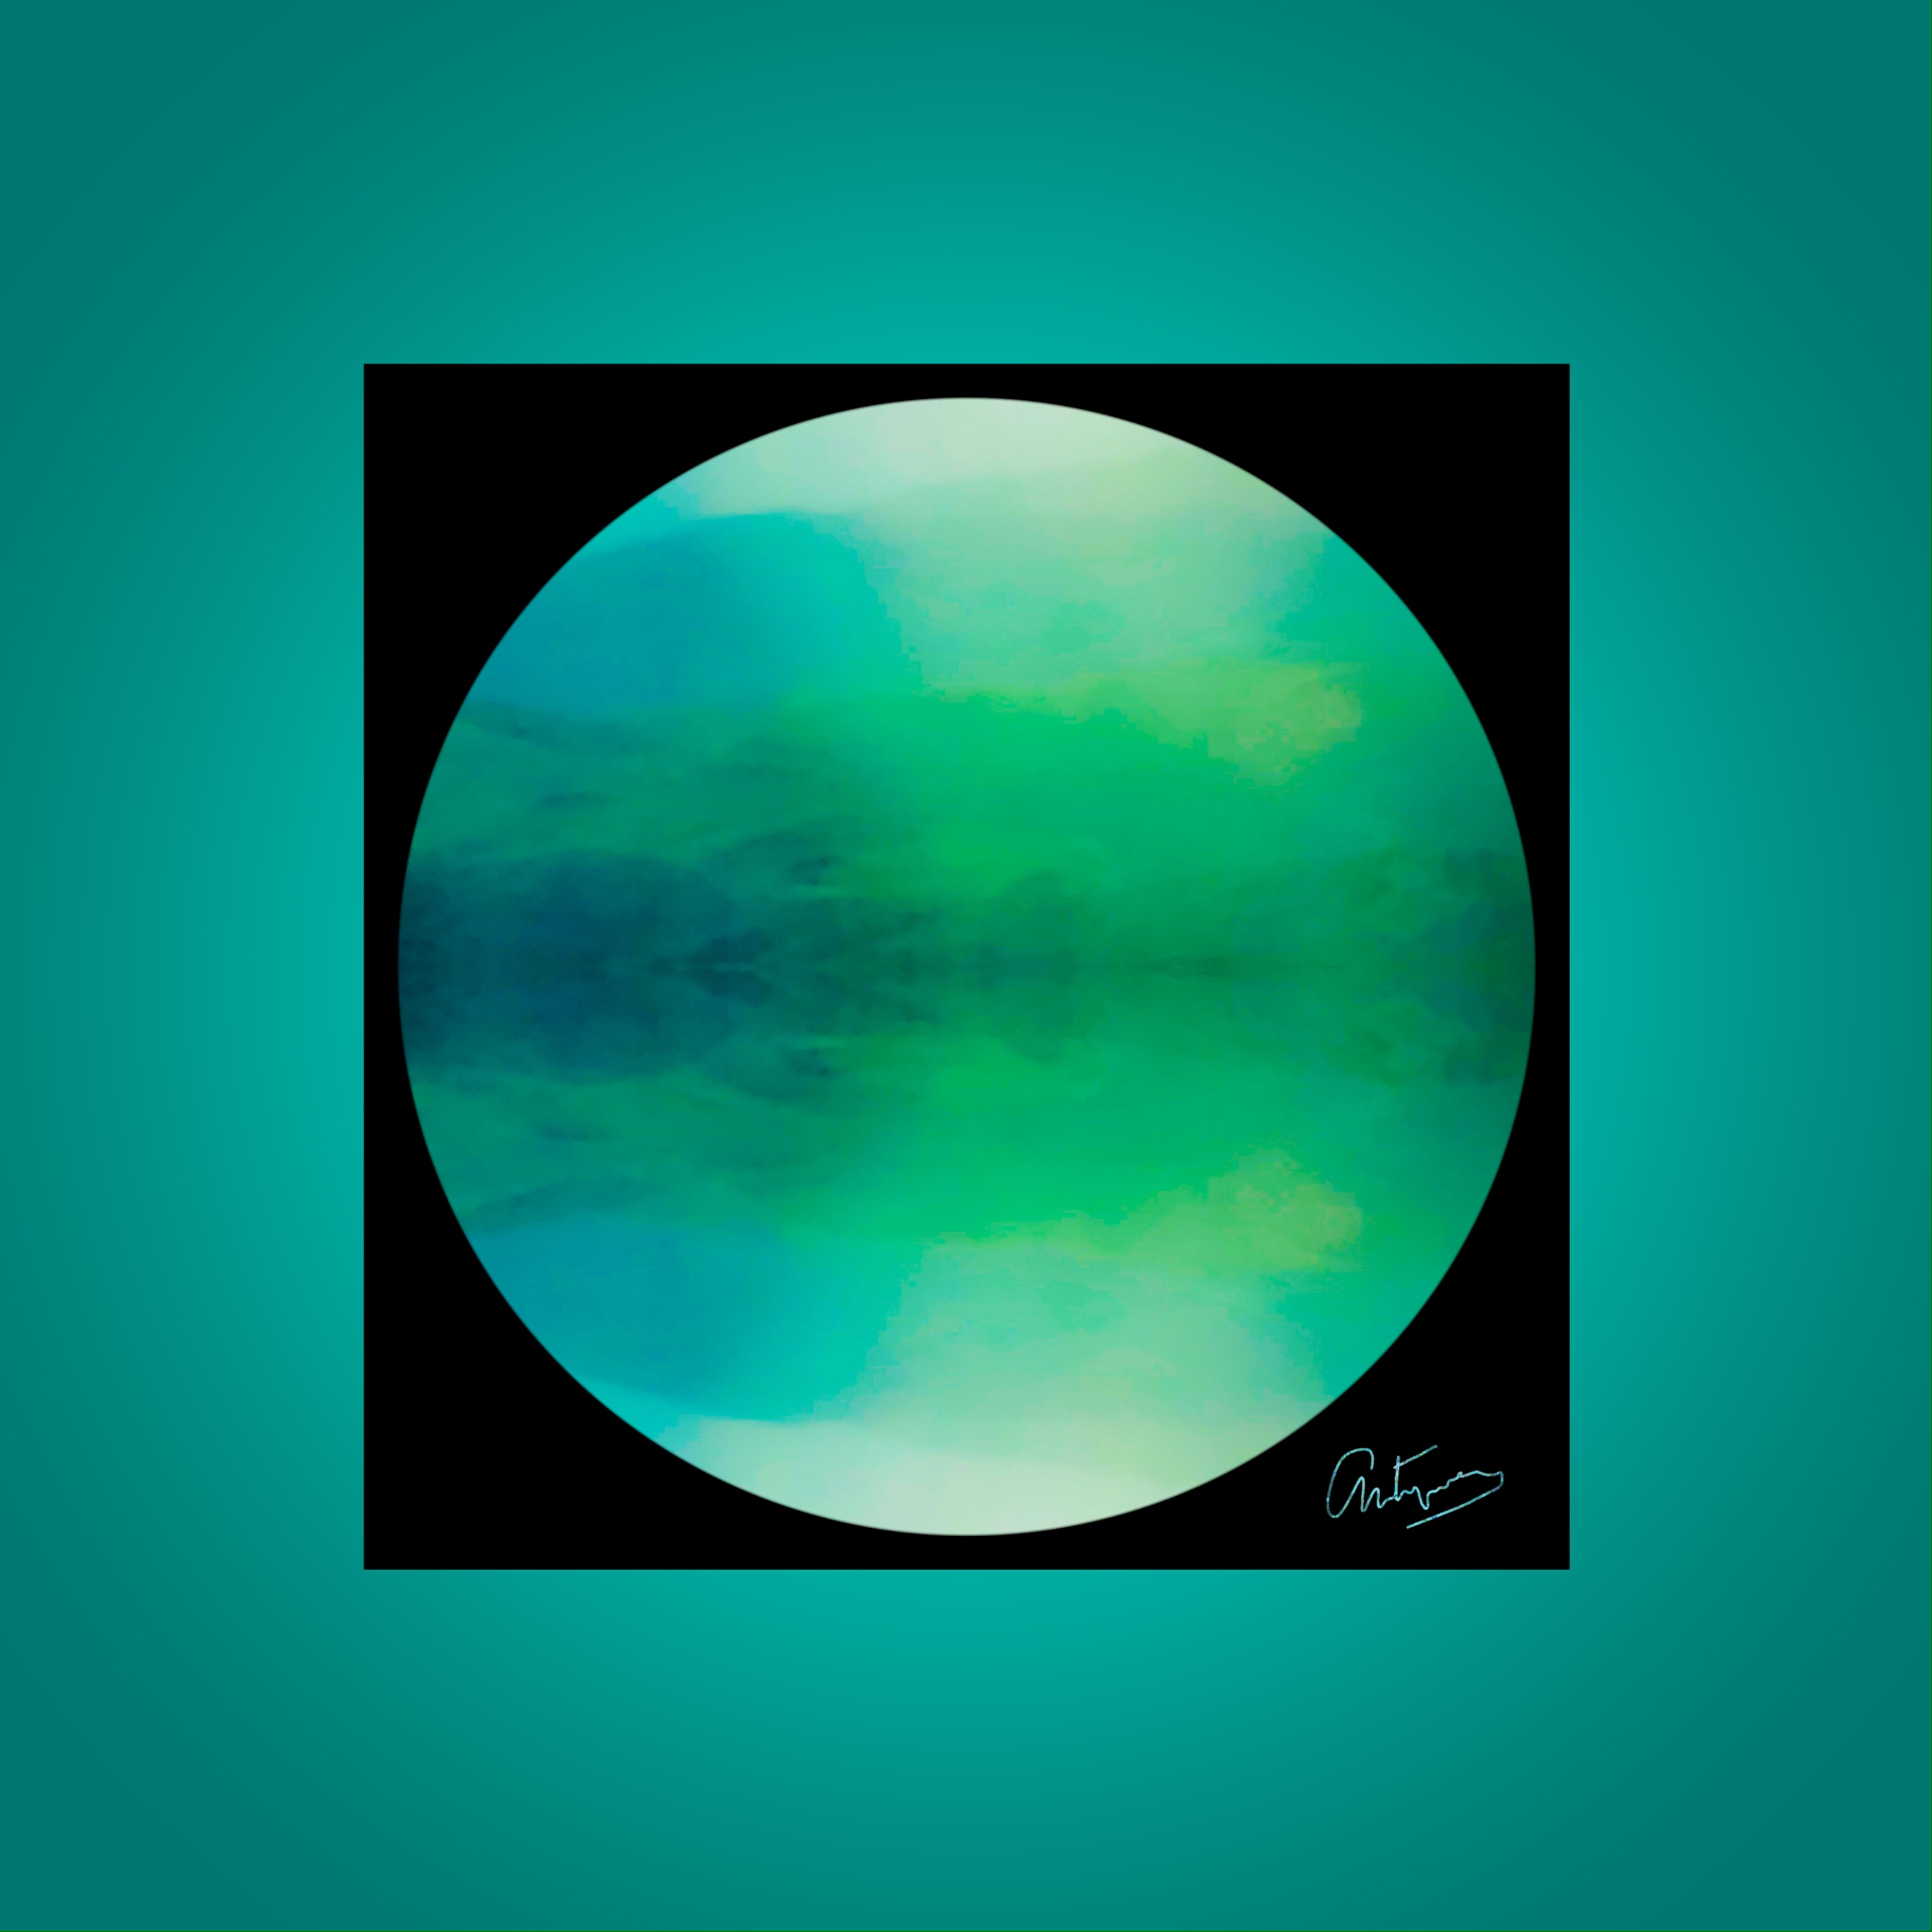 Abstract Artwork Gallery